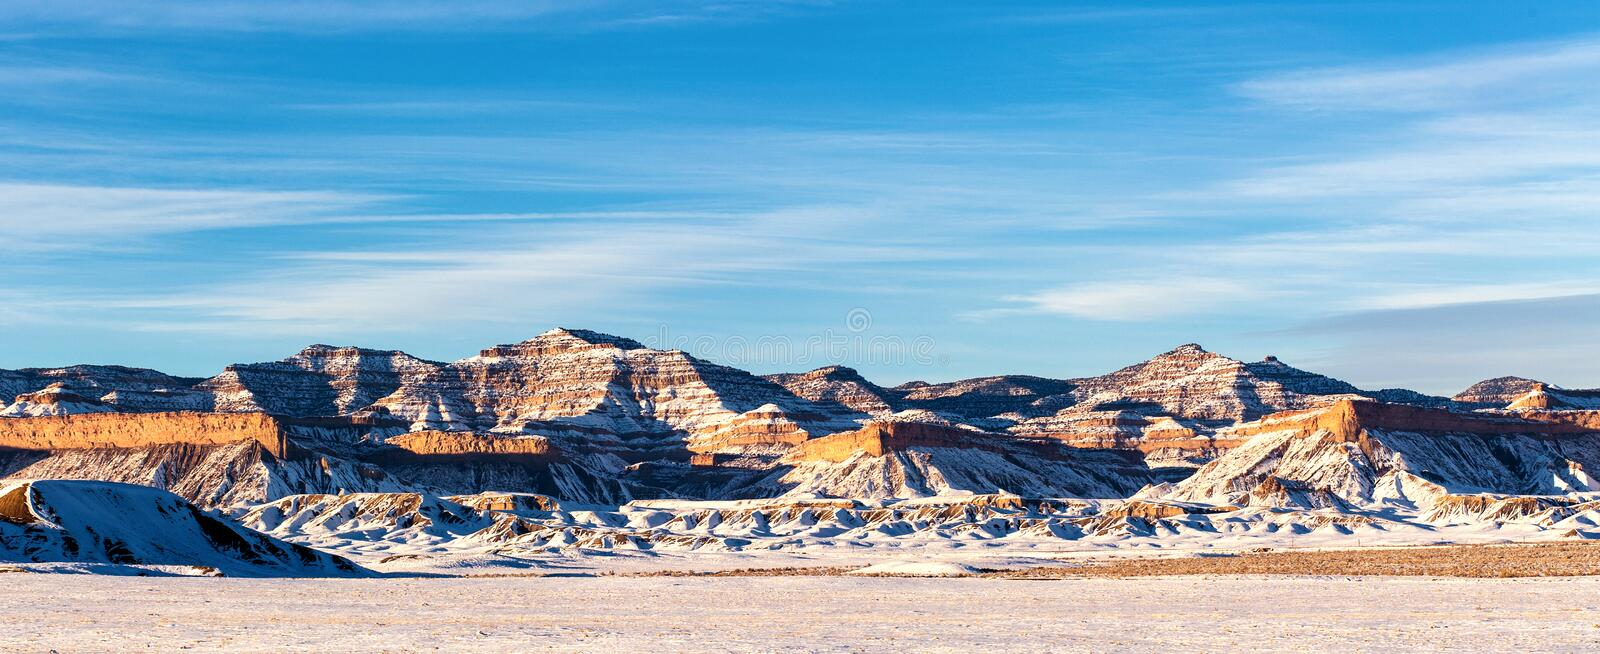 Snowing winter in them mountain side, Utah, USA. Snowing winter in them mountain side daylight in winter season, Utah, USA royalty free stock image